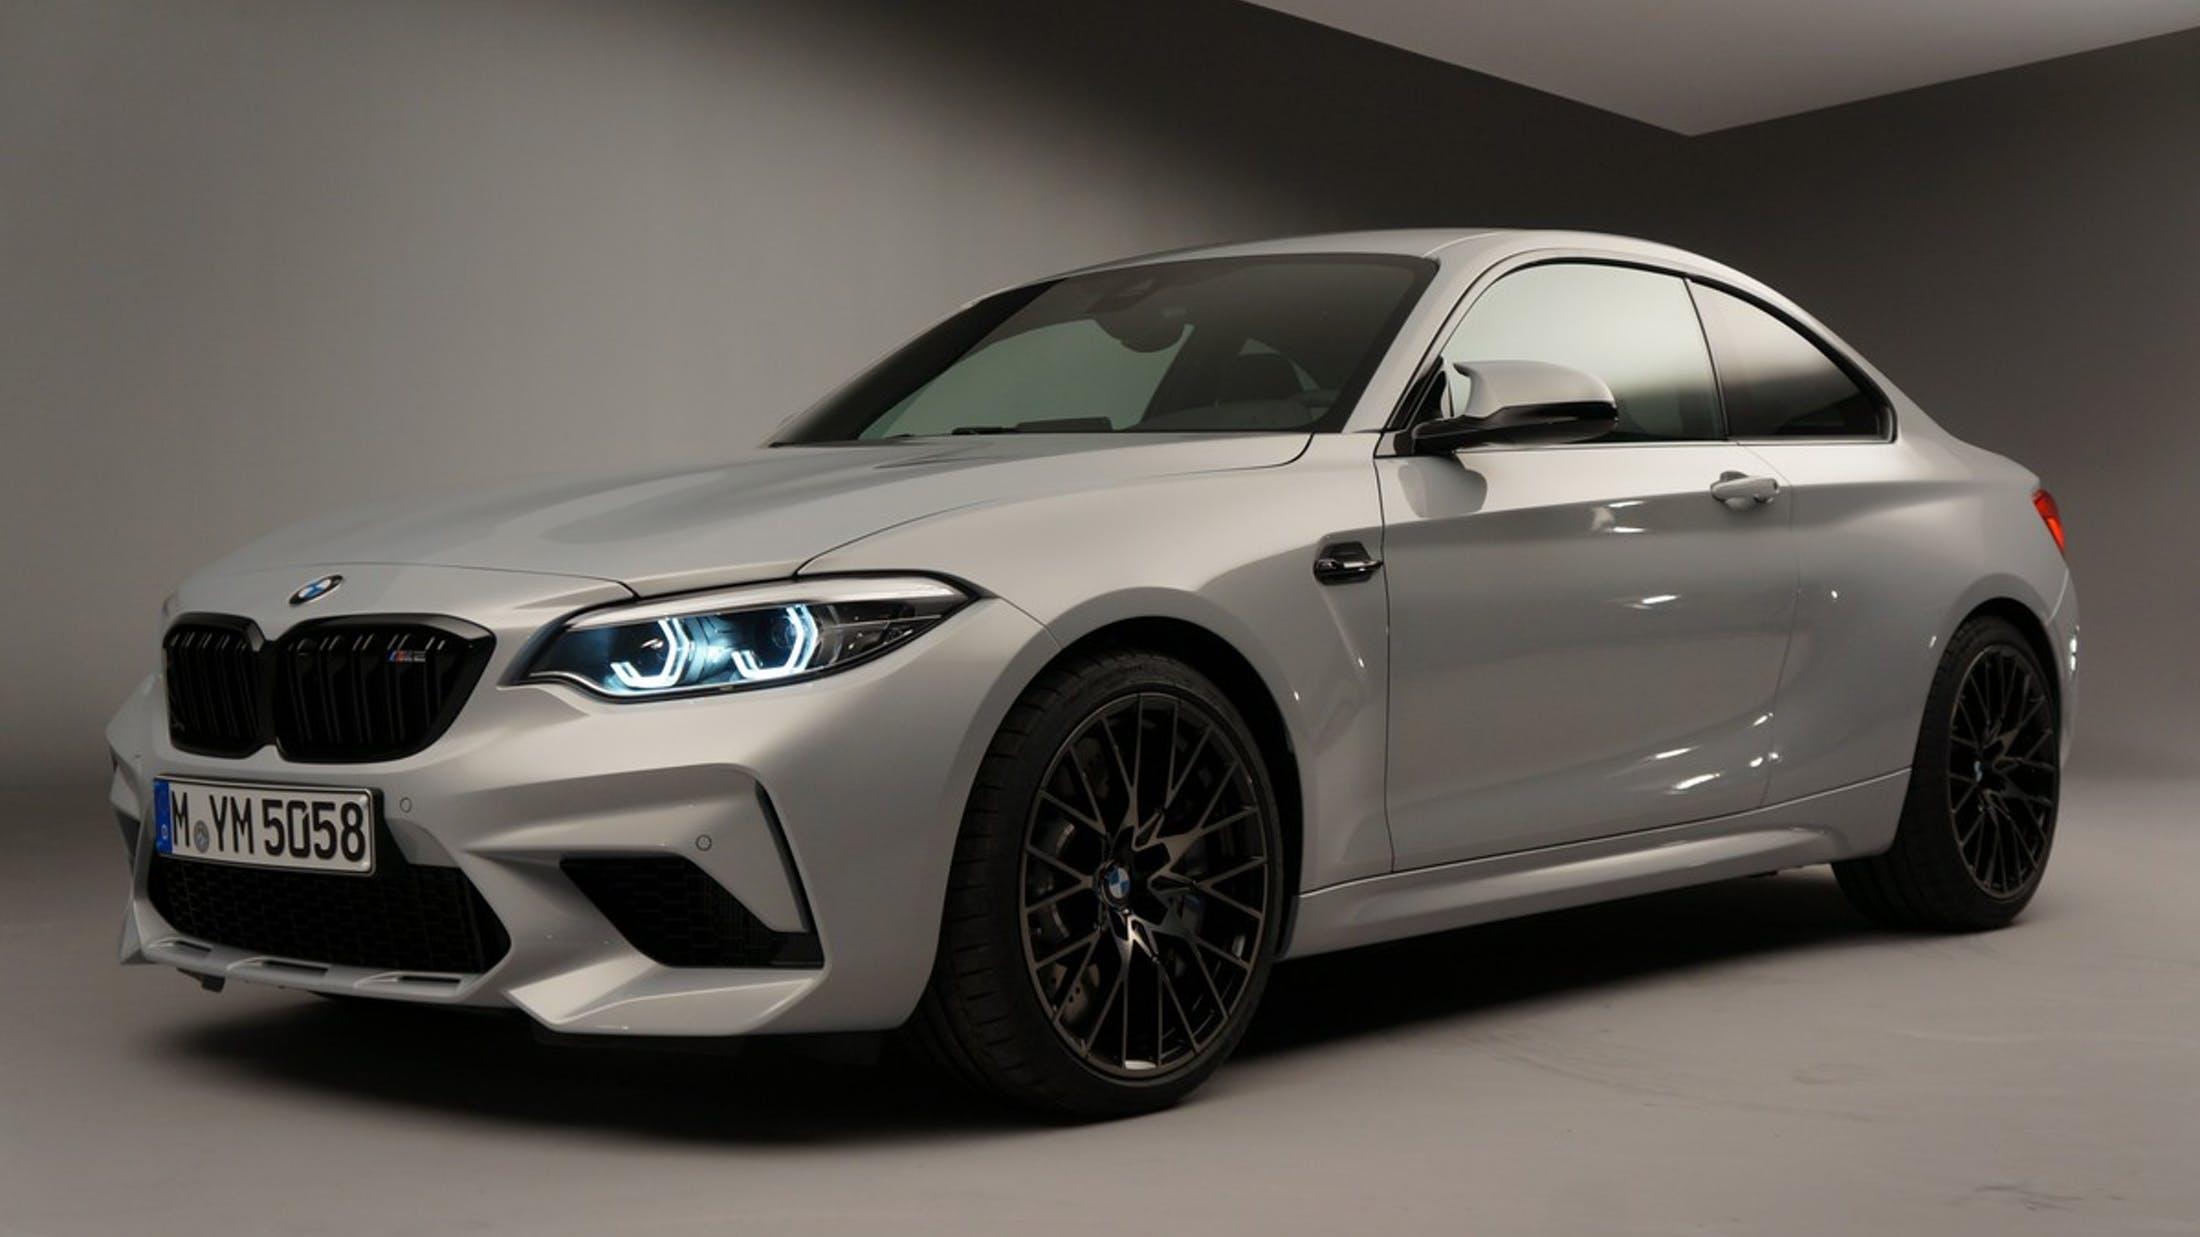 M2 Competition Price Delivery Date And Options In Belgium